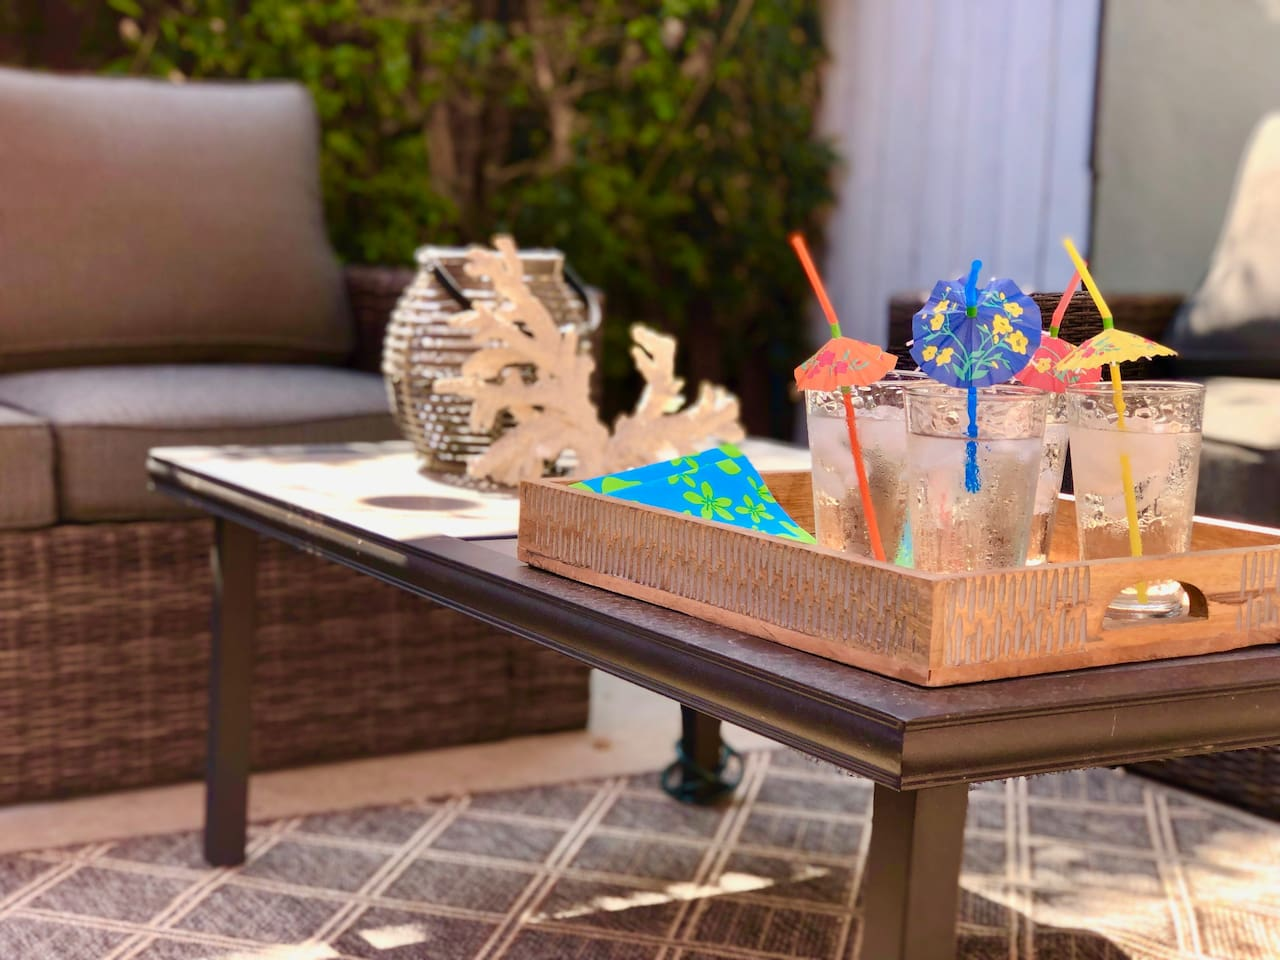 Relax on your Private Patio with lounge seating, coffee table, umbrella and cafe lighting, great for our warm SoCal evenings, or chilling out after a rough day at the beach.